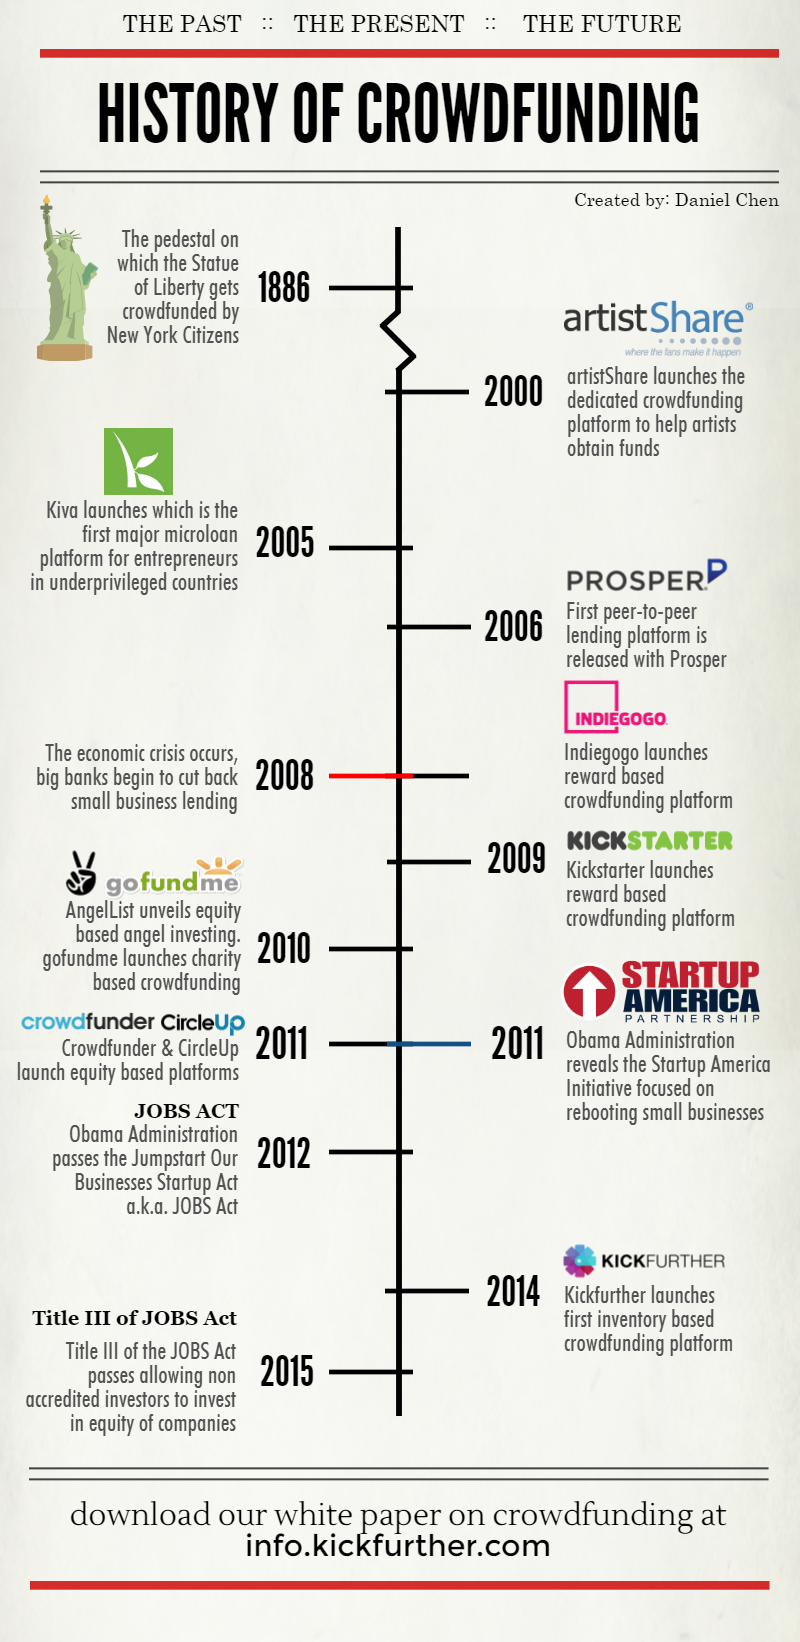 The History of Crowdfunding